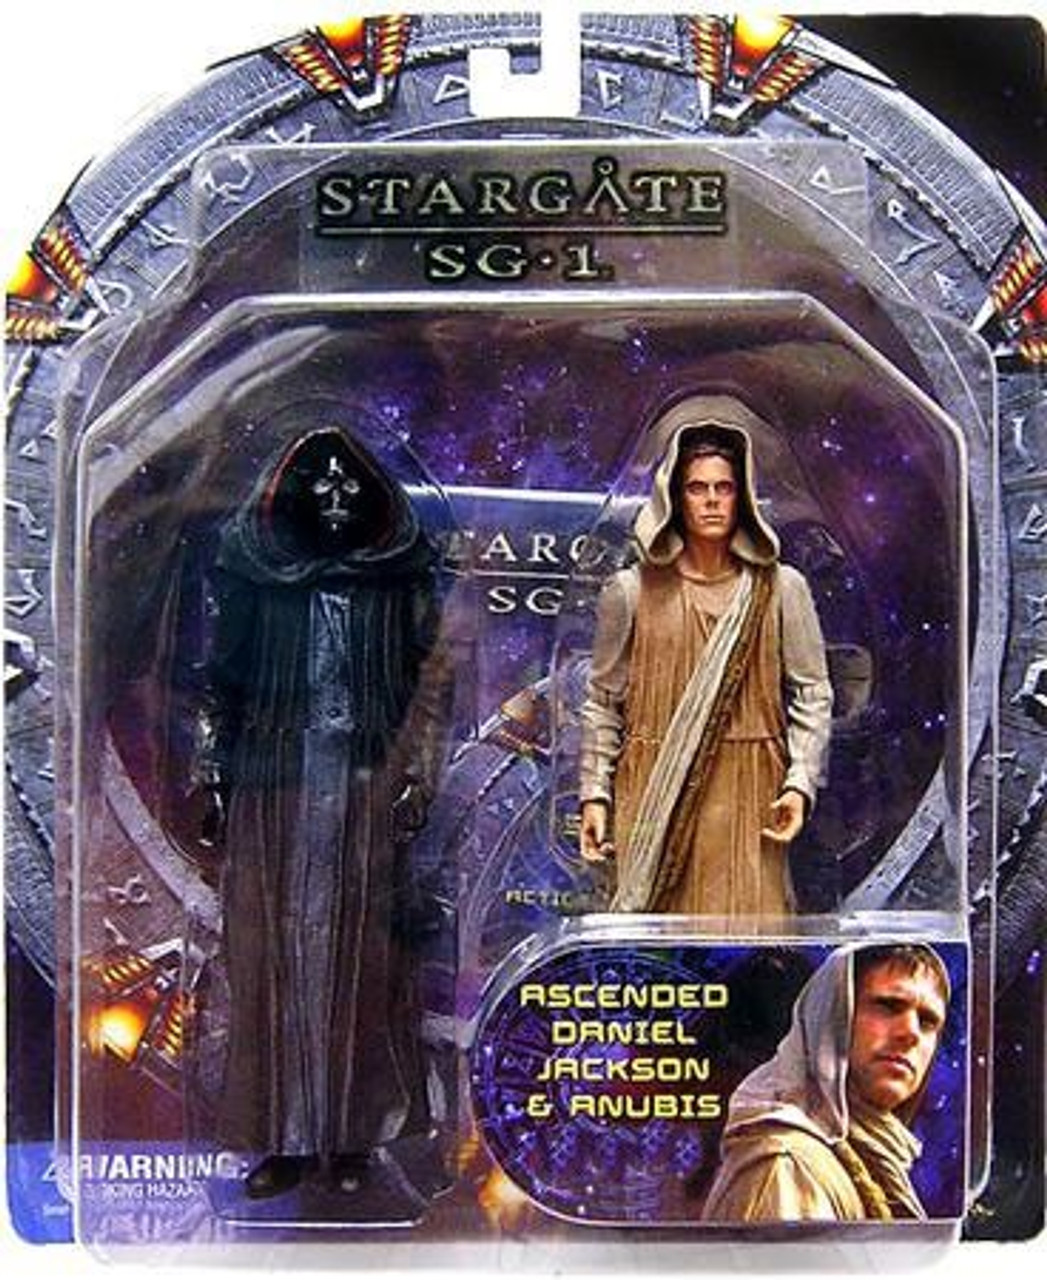 Stargate SG-1 Ascended Daniel Jackson & Anubis Exclusive Action Figure 2-Pack